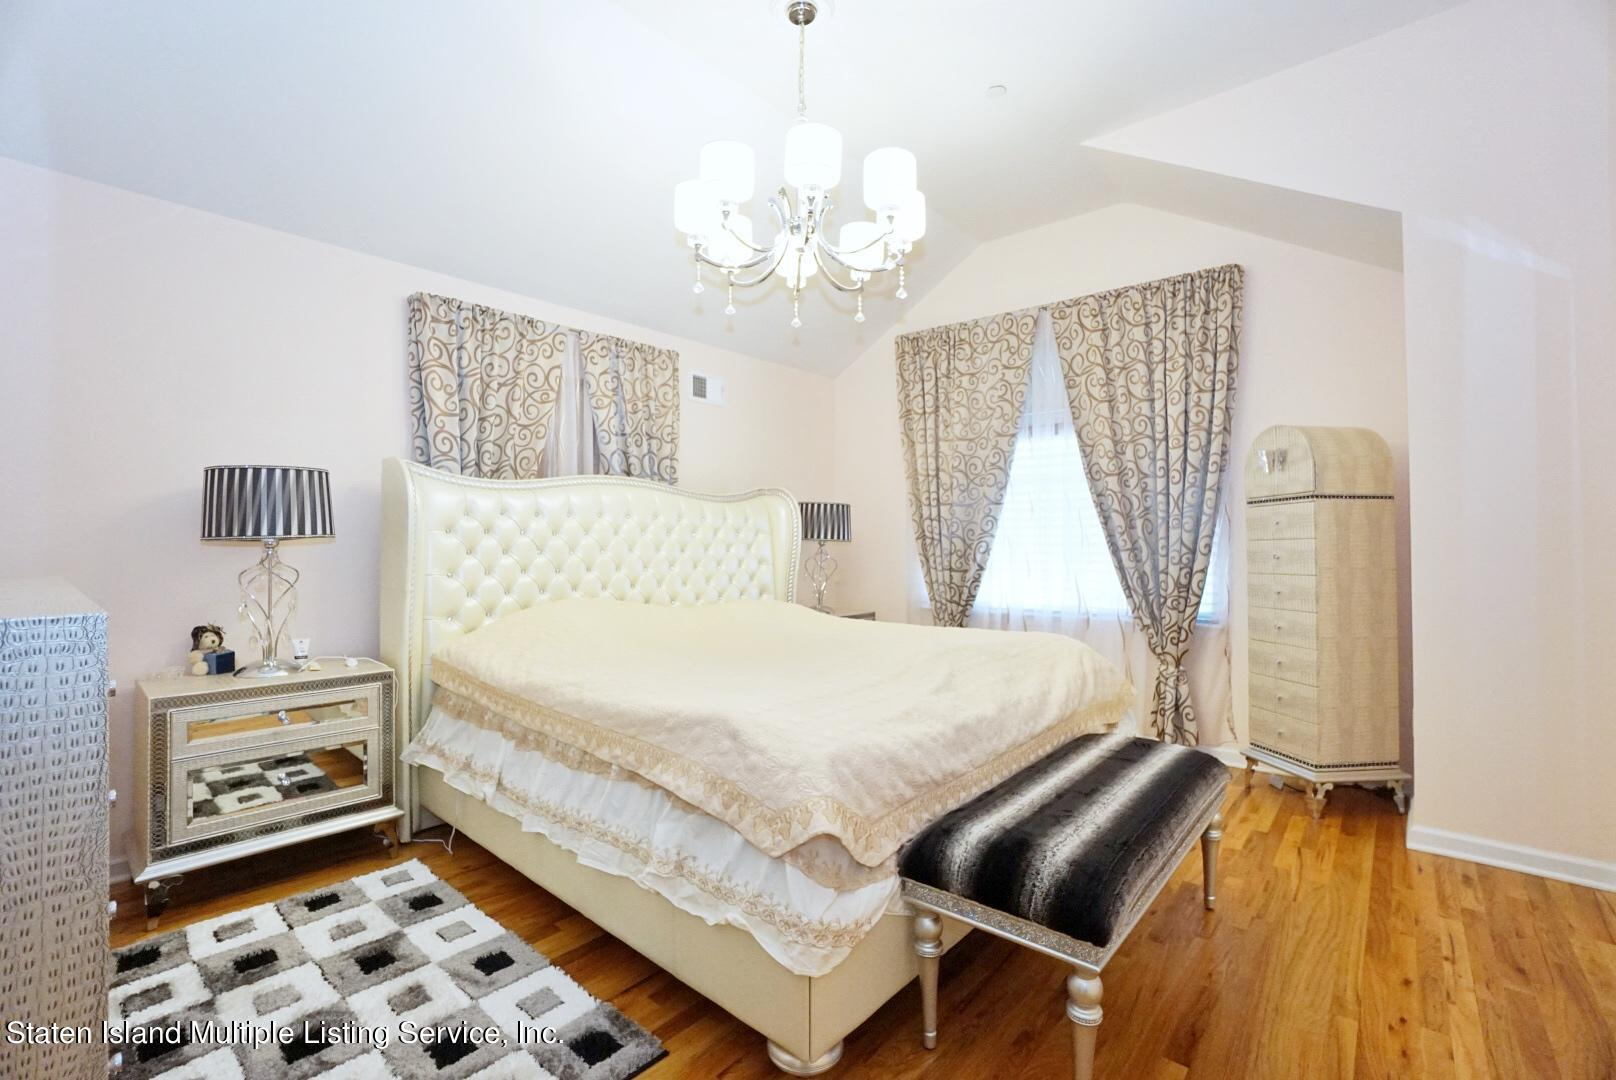 Single Family - Detached 171 Benziger Avenue  Staten Island, NY 10301, MLS-1145235-18